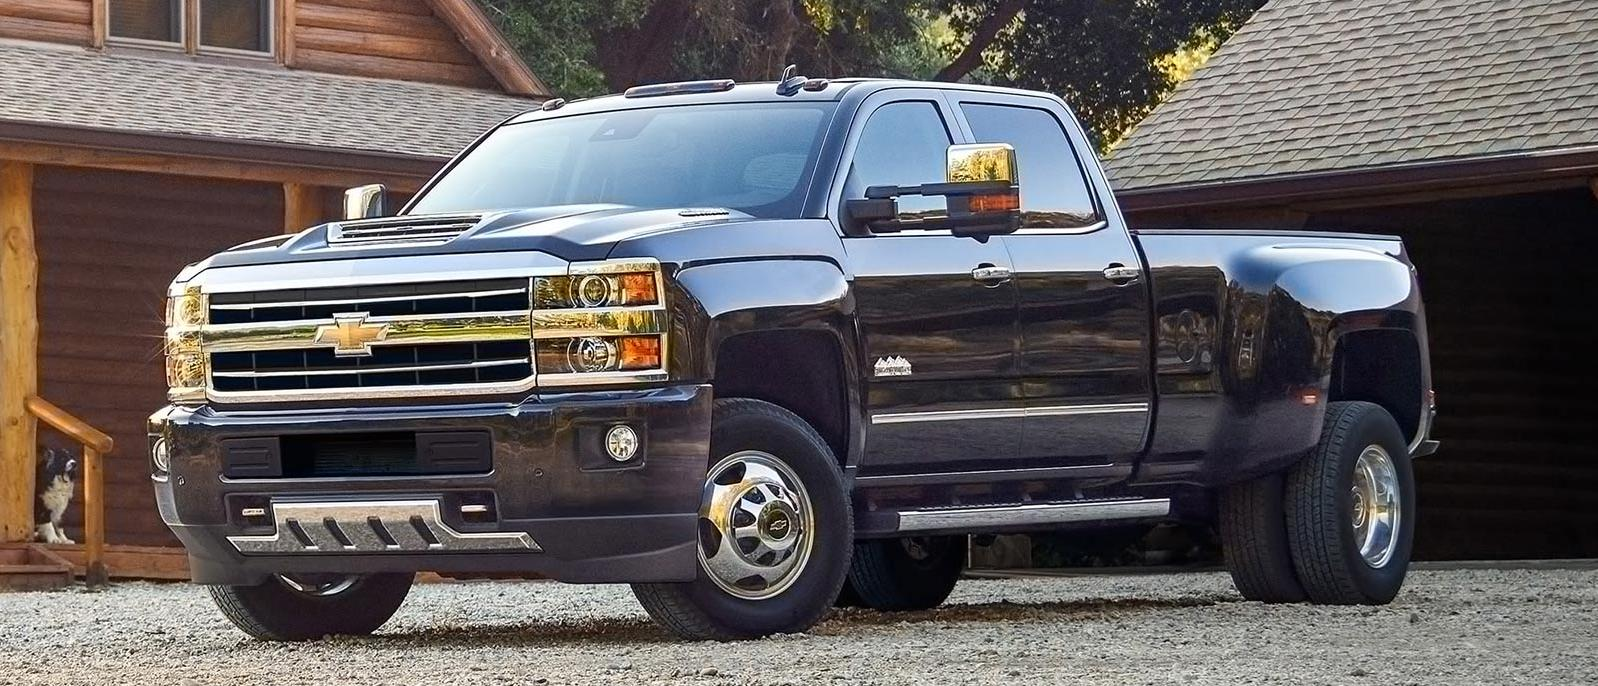 4 Reasons To Purchase The New Chevy Silverado This January